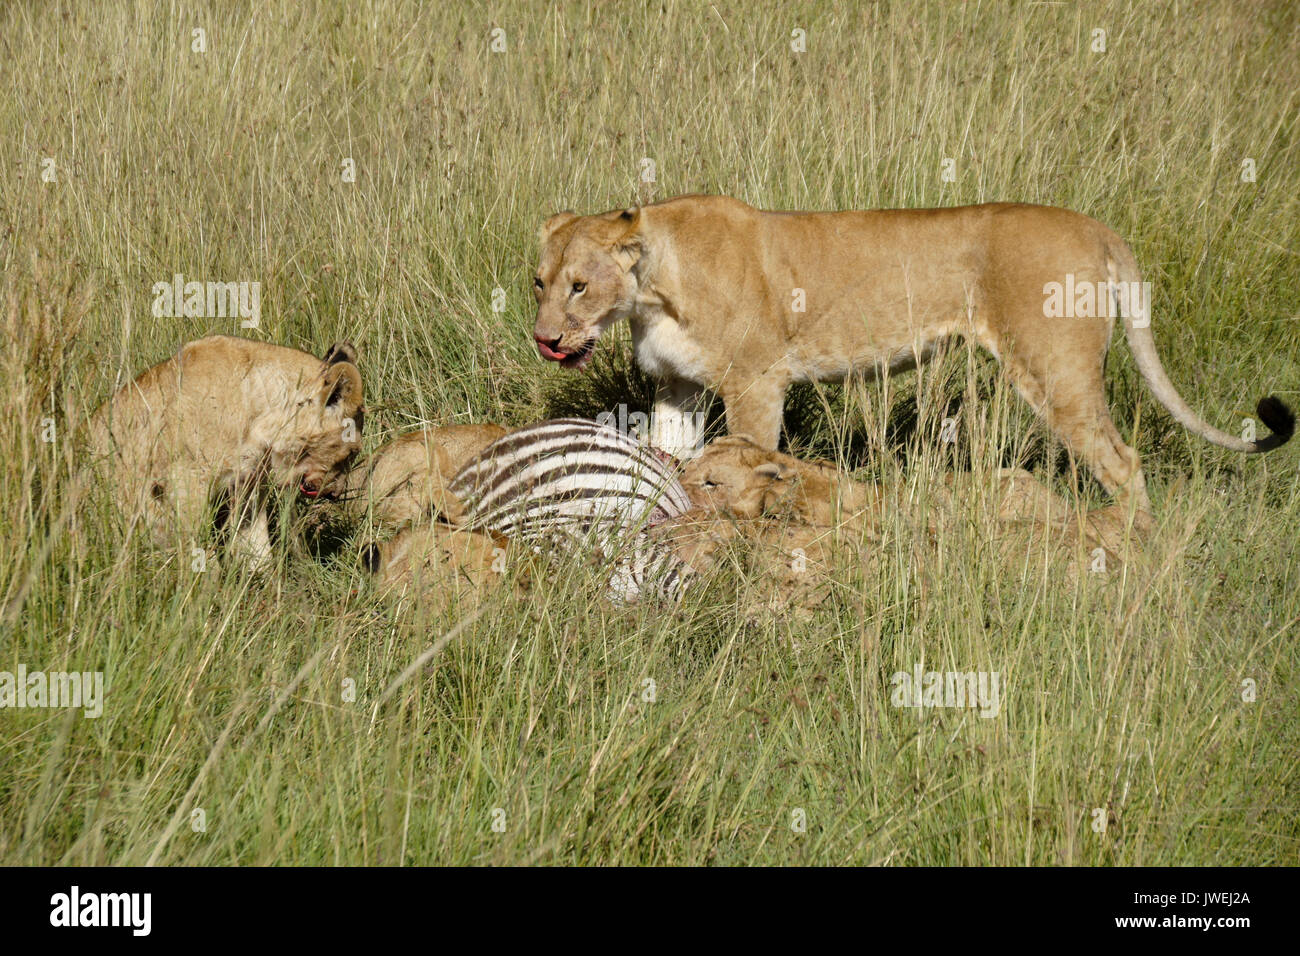 Lion pride (females and cubs) on a zebra kill, Masai Mara Game Reserve, Kenya - Stock Image